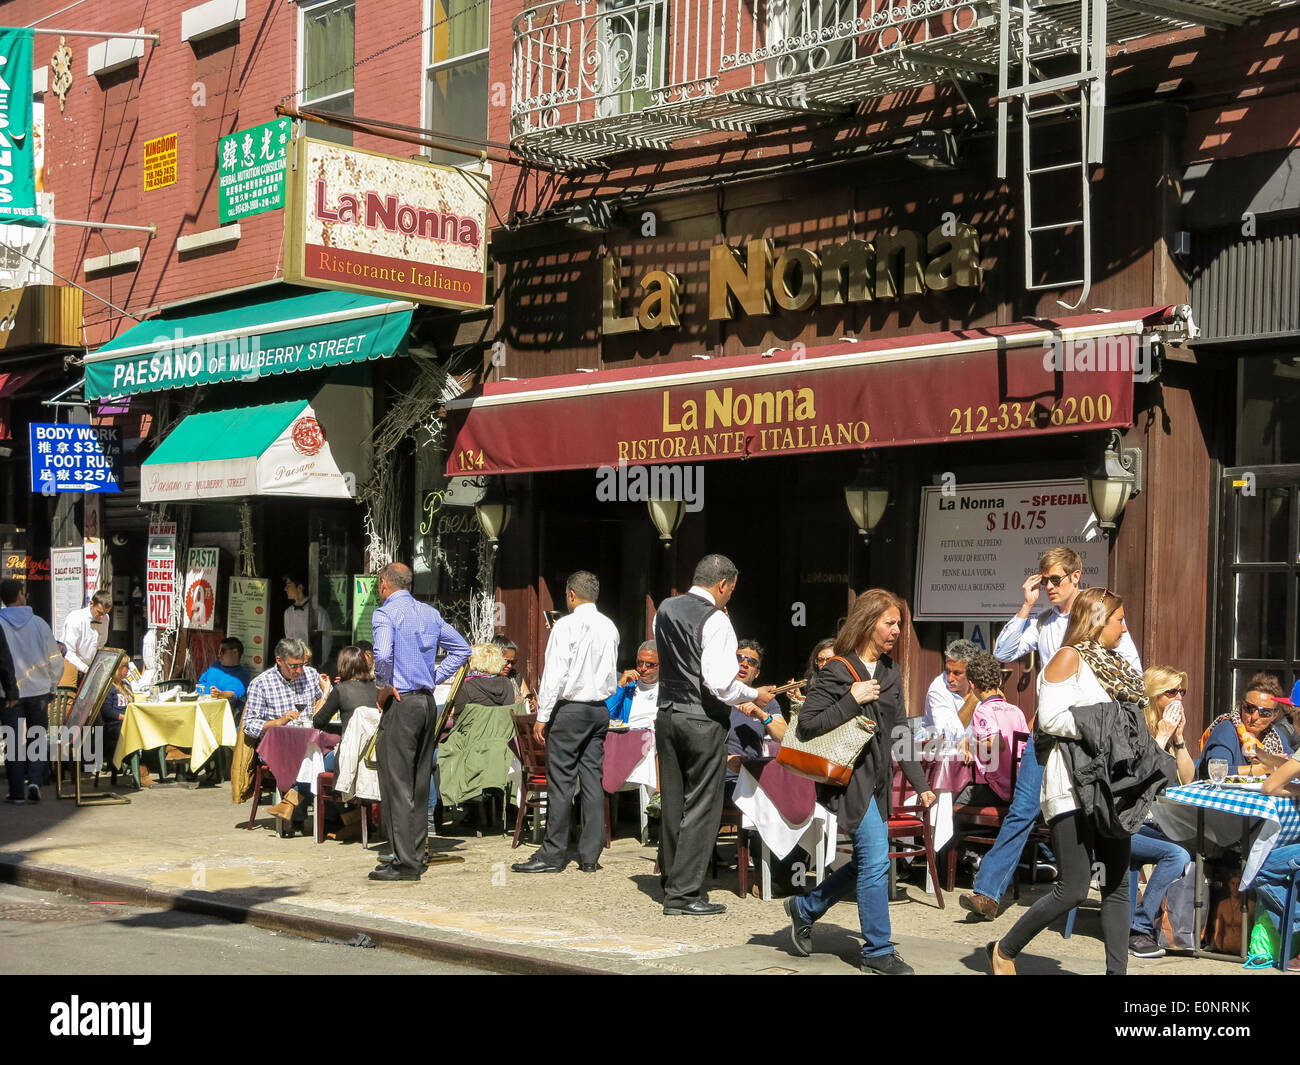 La Nonna Italian Restaurant Little Italy Nyc Stock Photo